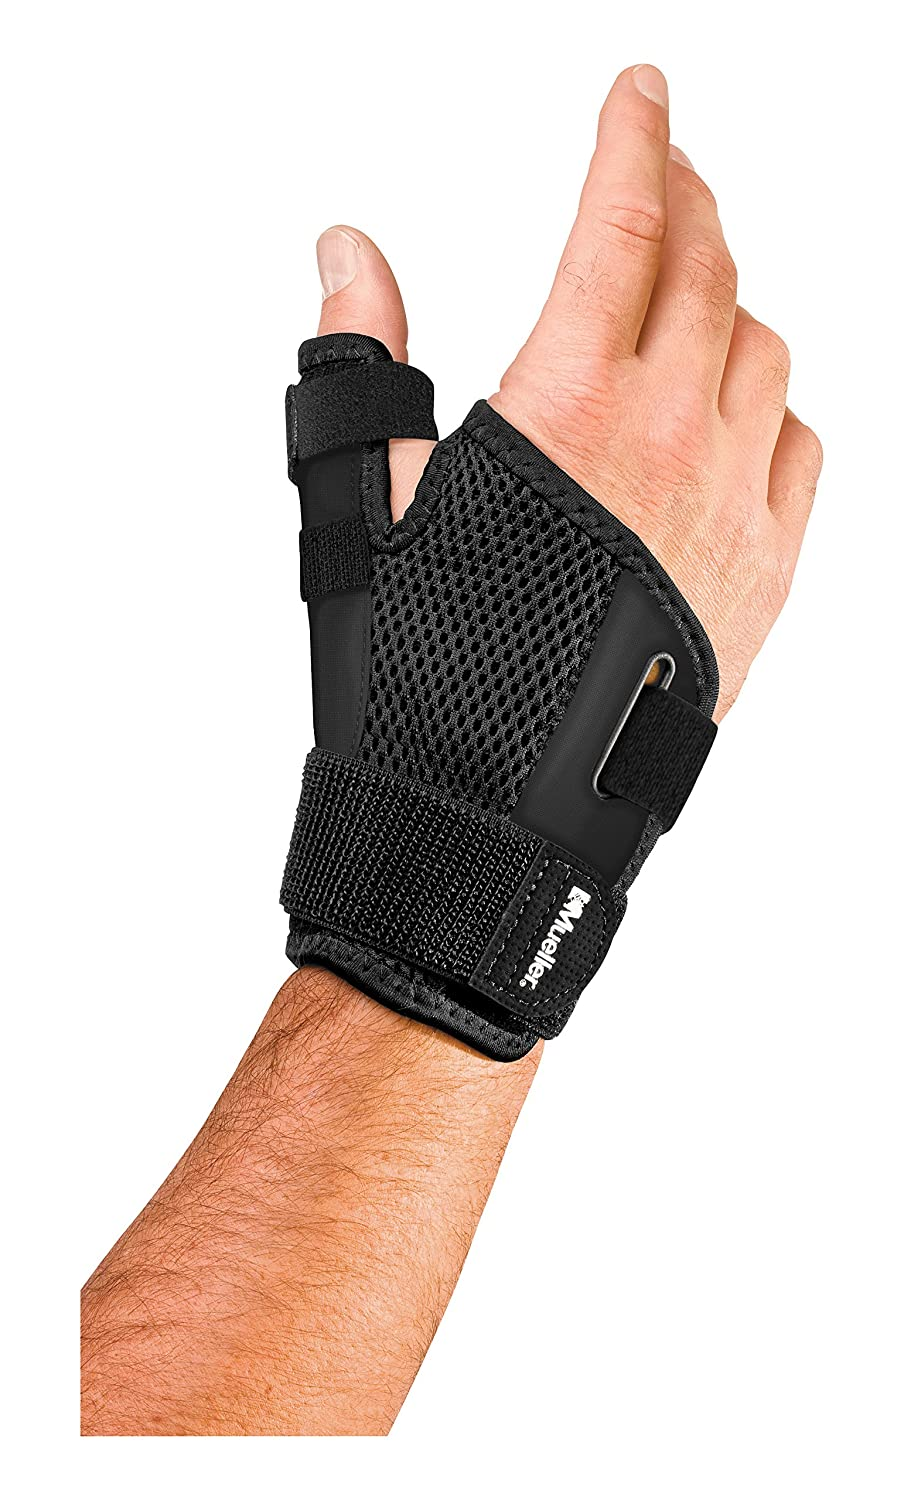 Mueller Sports Medicine Reversible Thumb Stabilizer, Black, Measure Around  Wrist- Fits 5 5 - 10 5 Inches